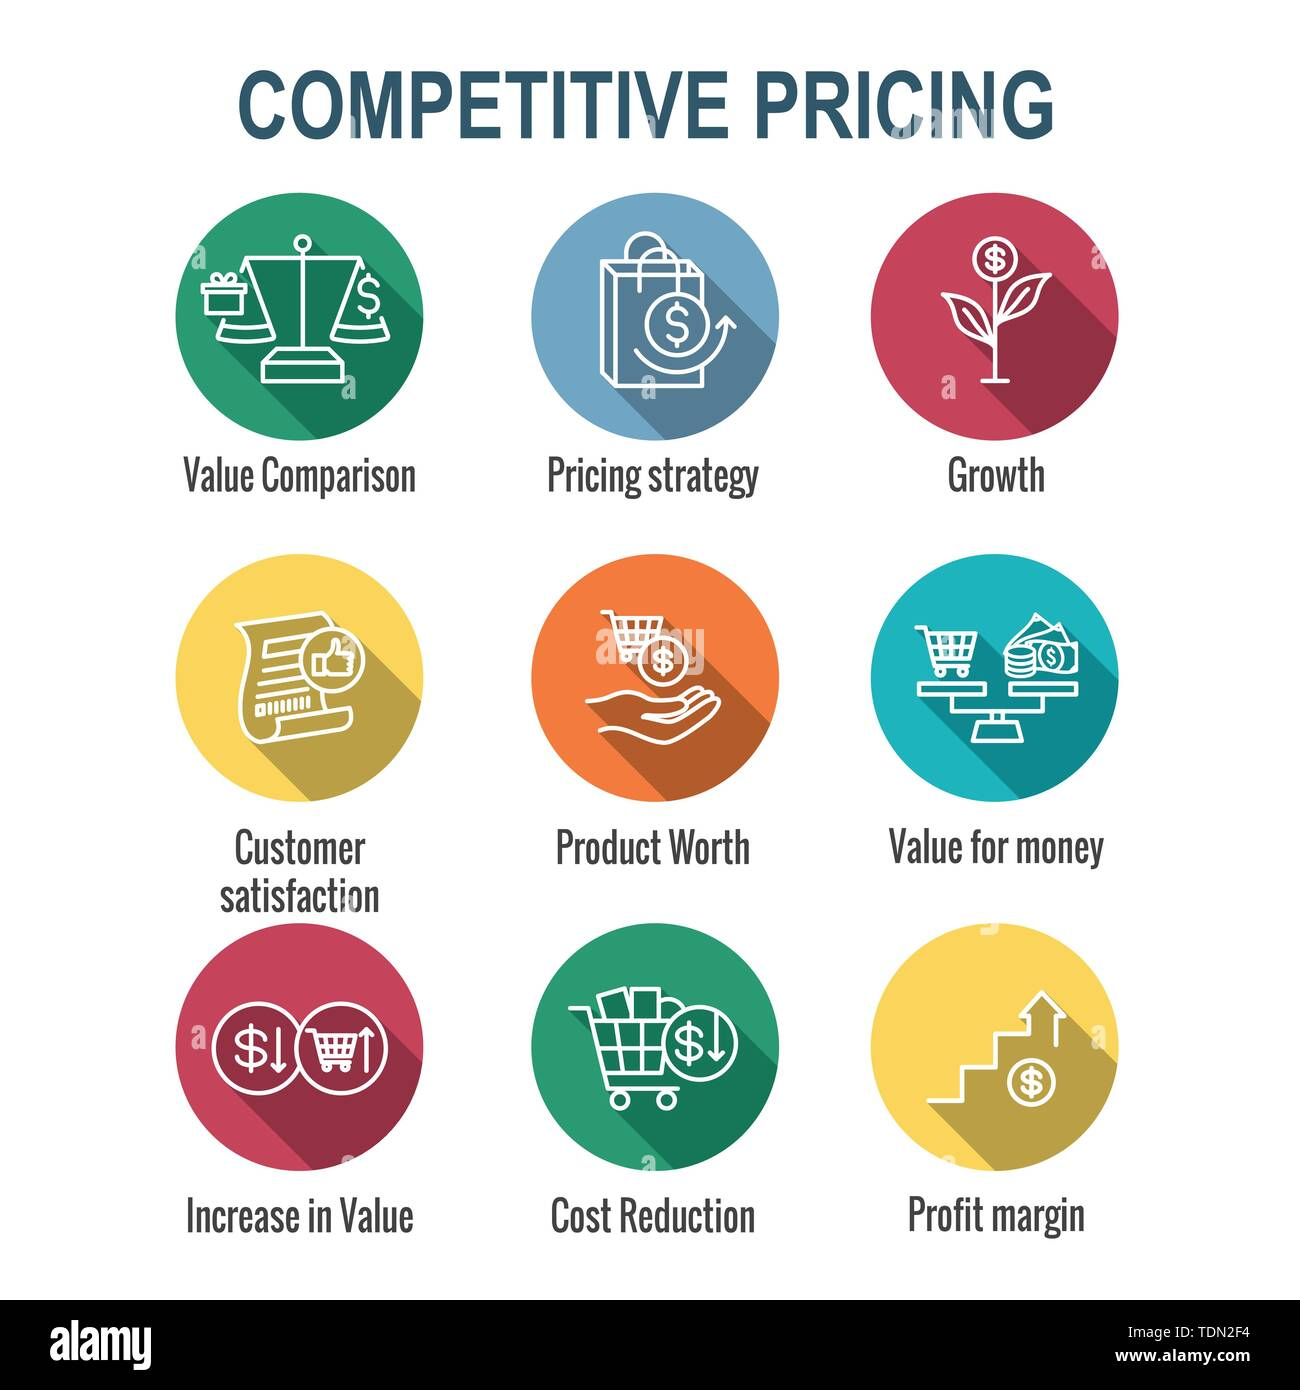 Competitive Pricing Icon Set w Growth, Profitability, and Worth - Stock Image